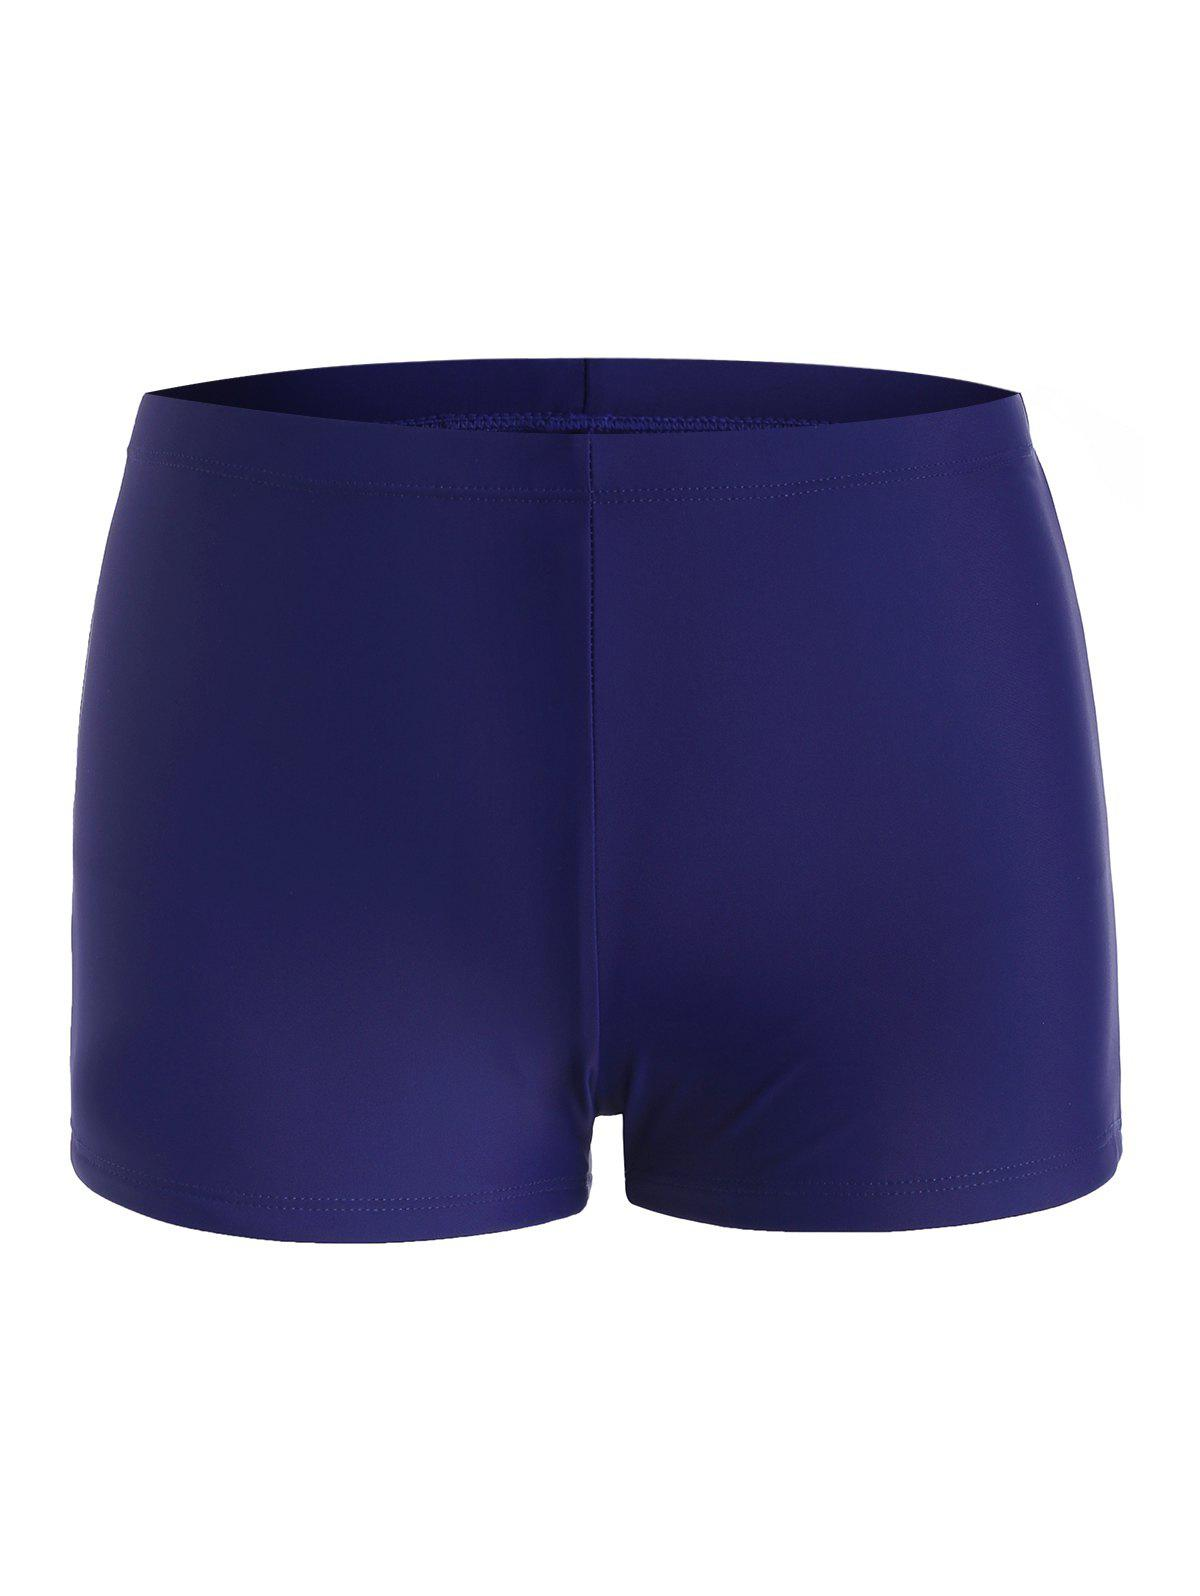 Mid Rise Plain Swim Shorts - DEEP BLUE M